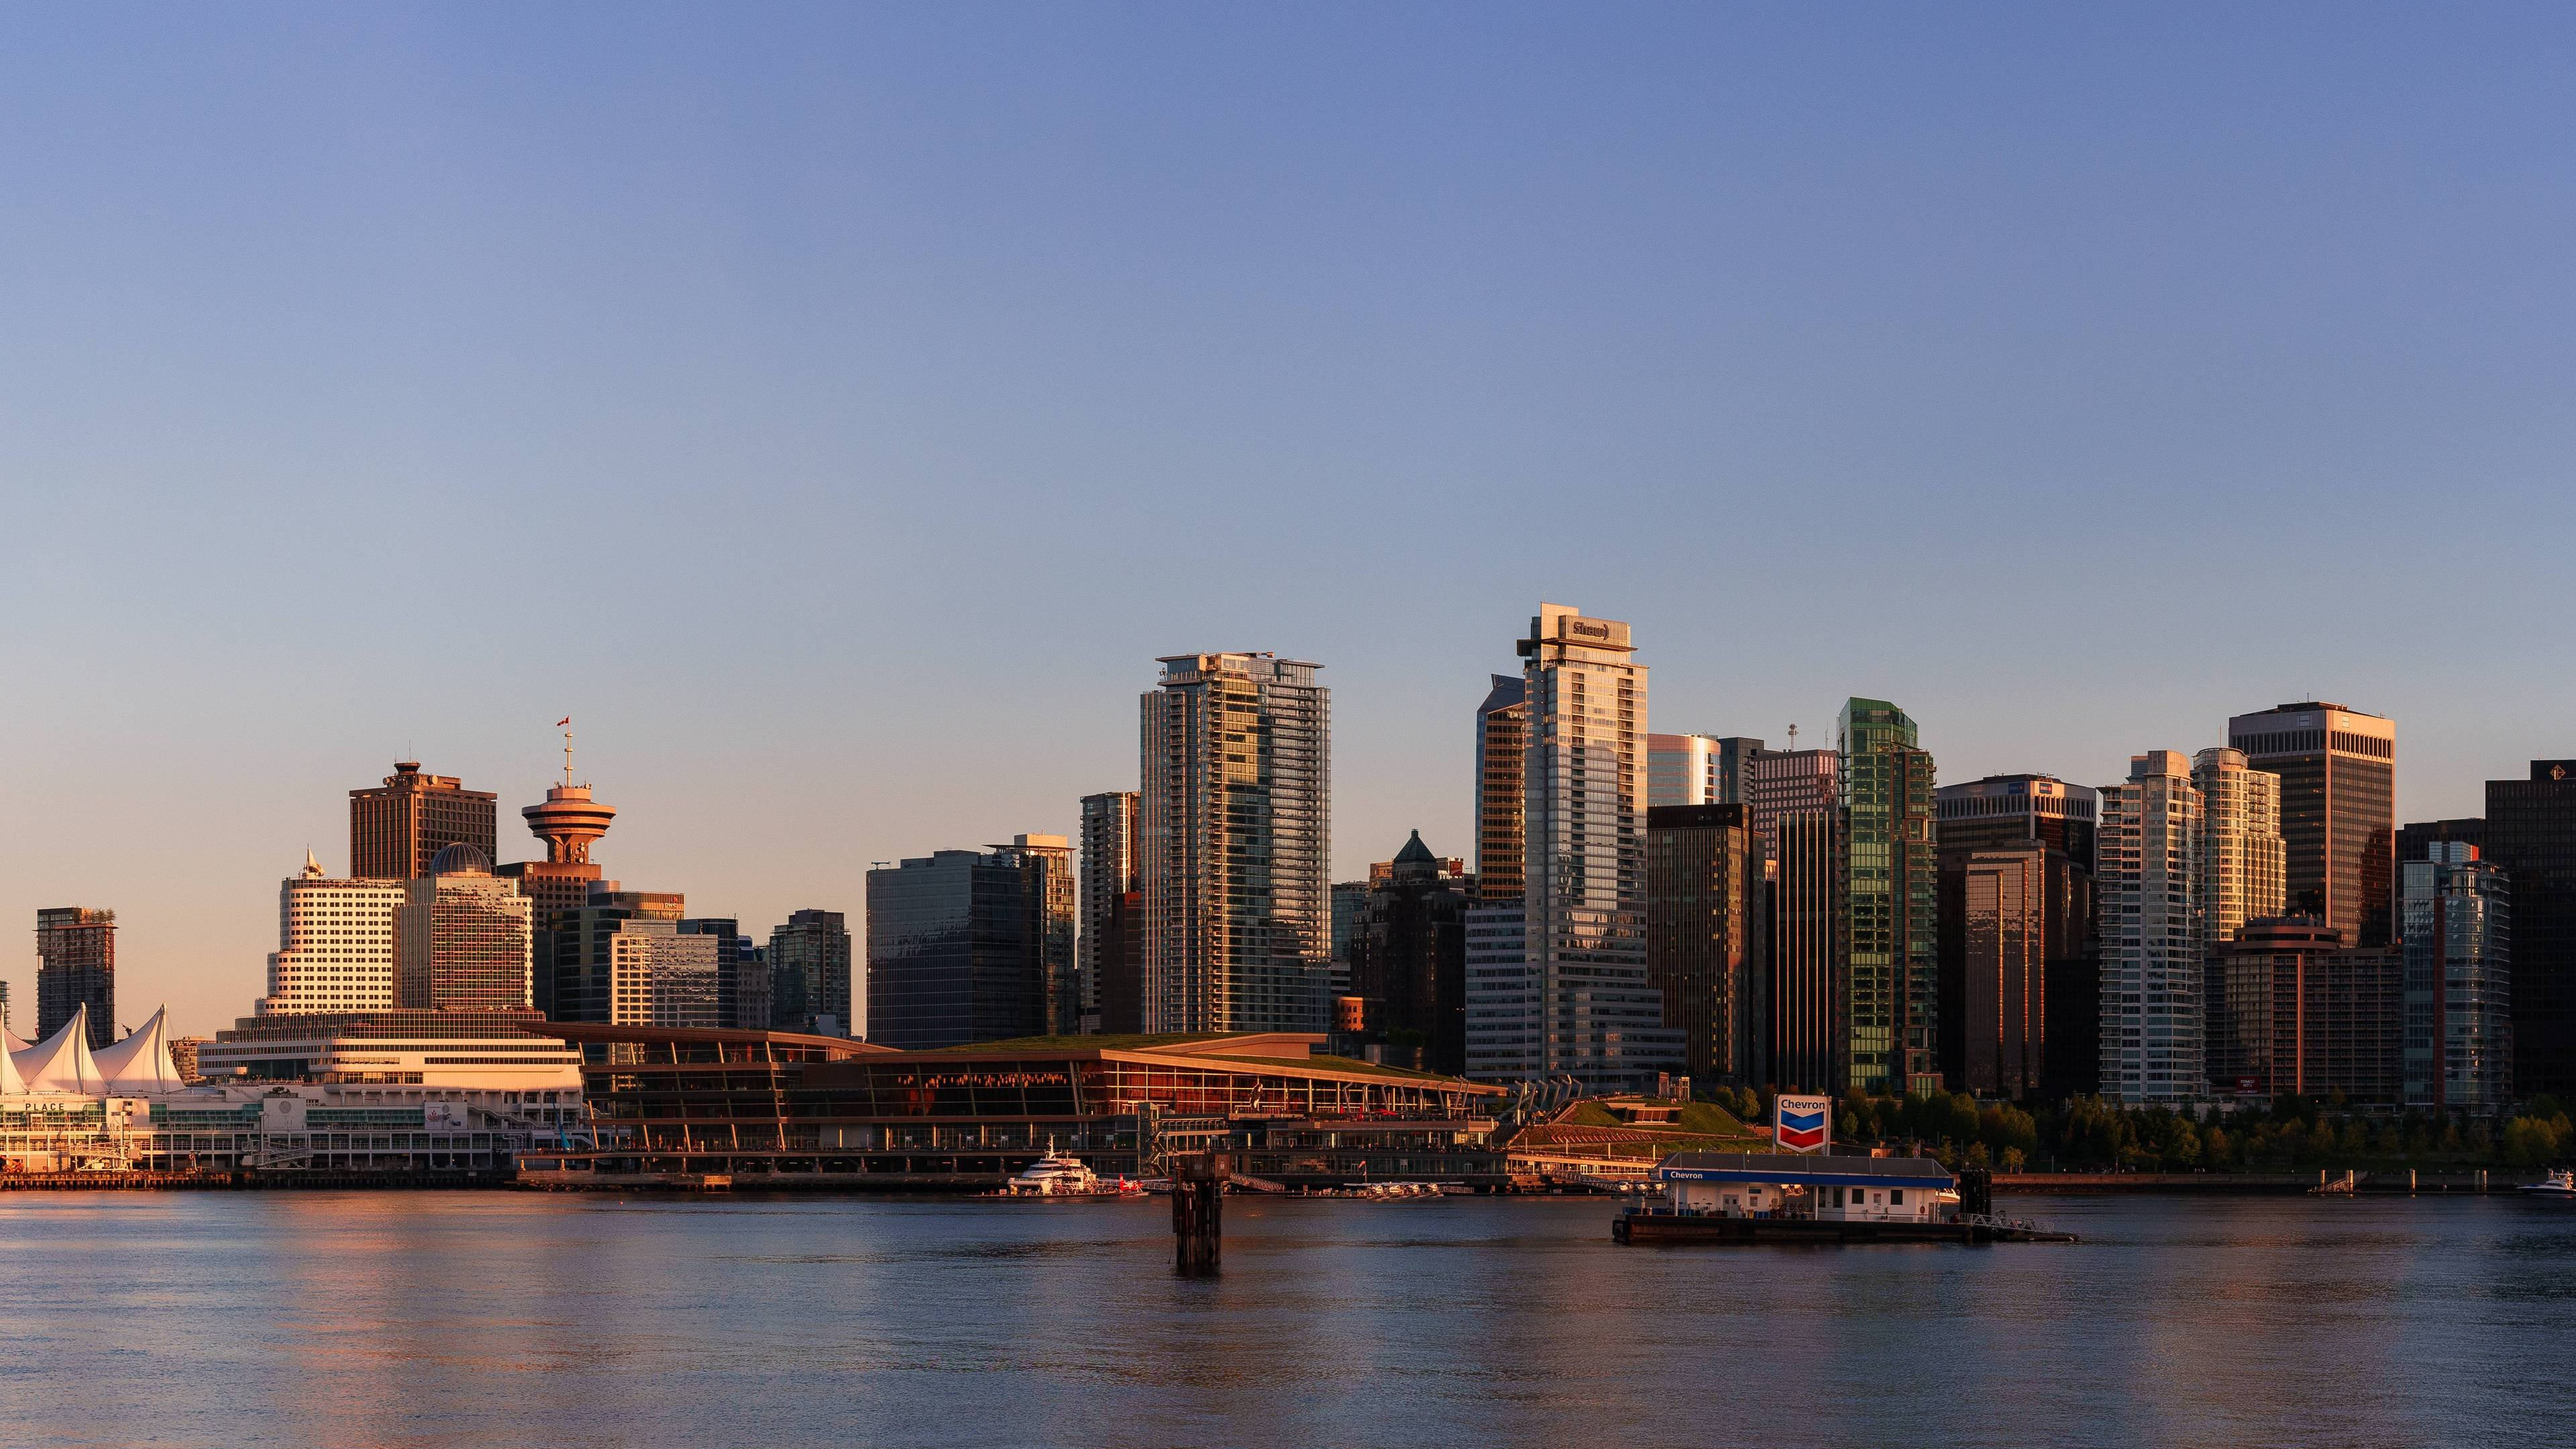 Vancouver Wallpapers Photos And Desktop Backgrounds Up To 8K